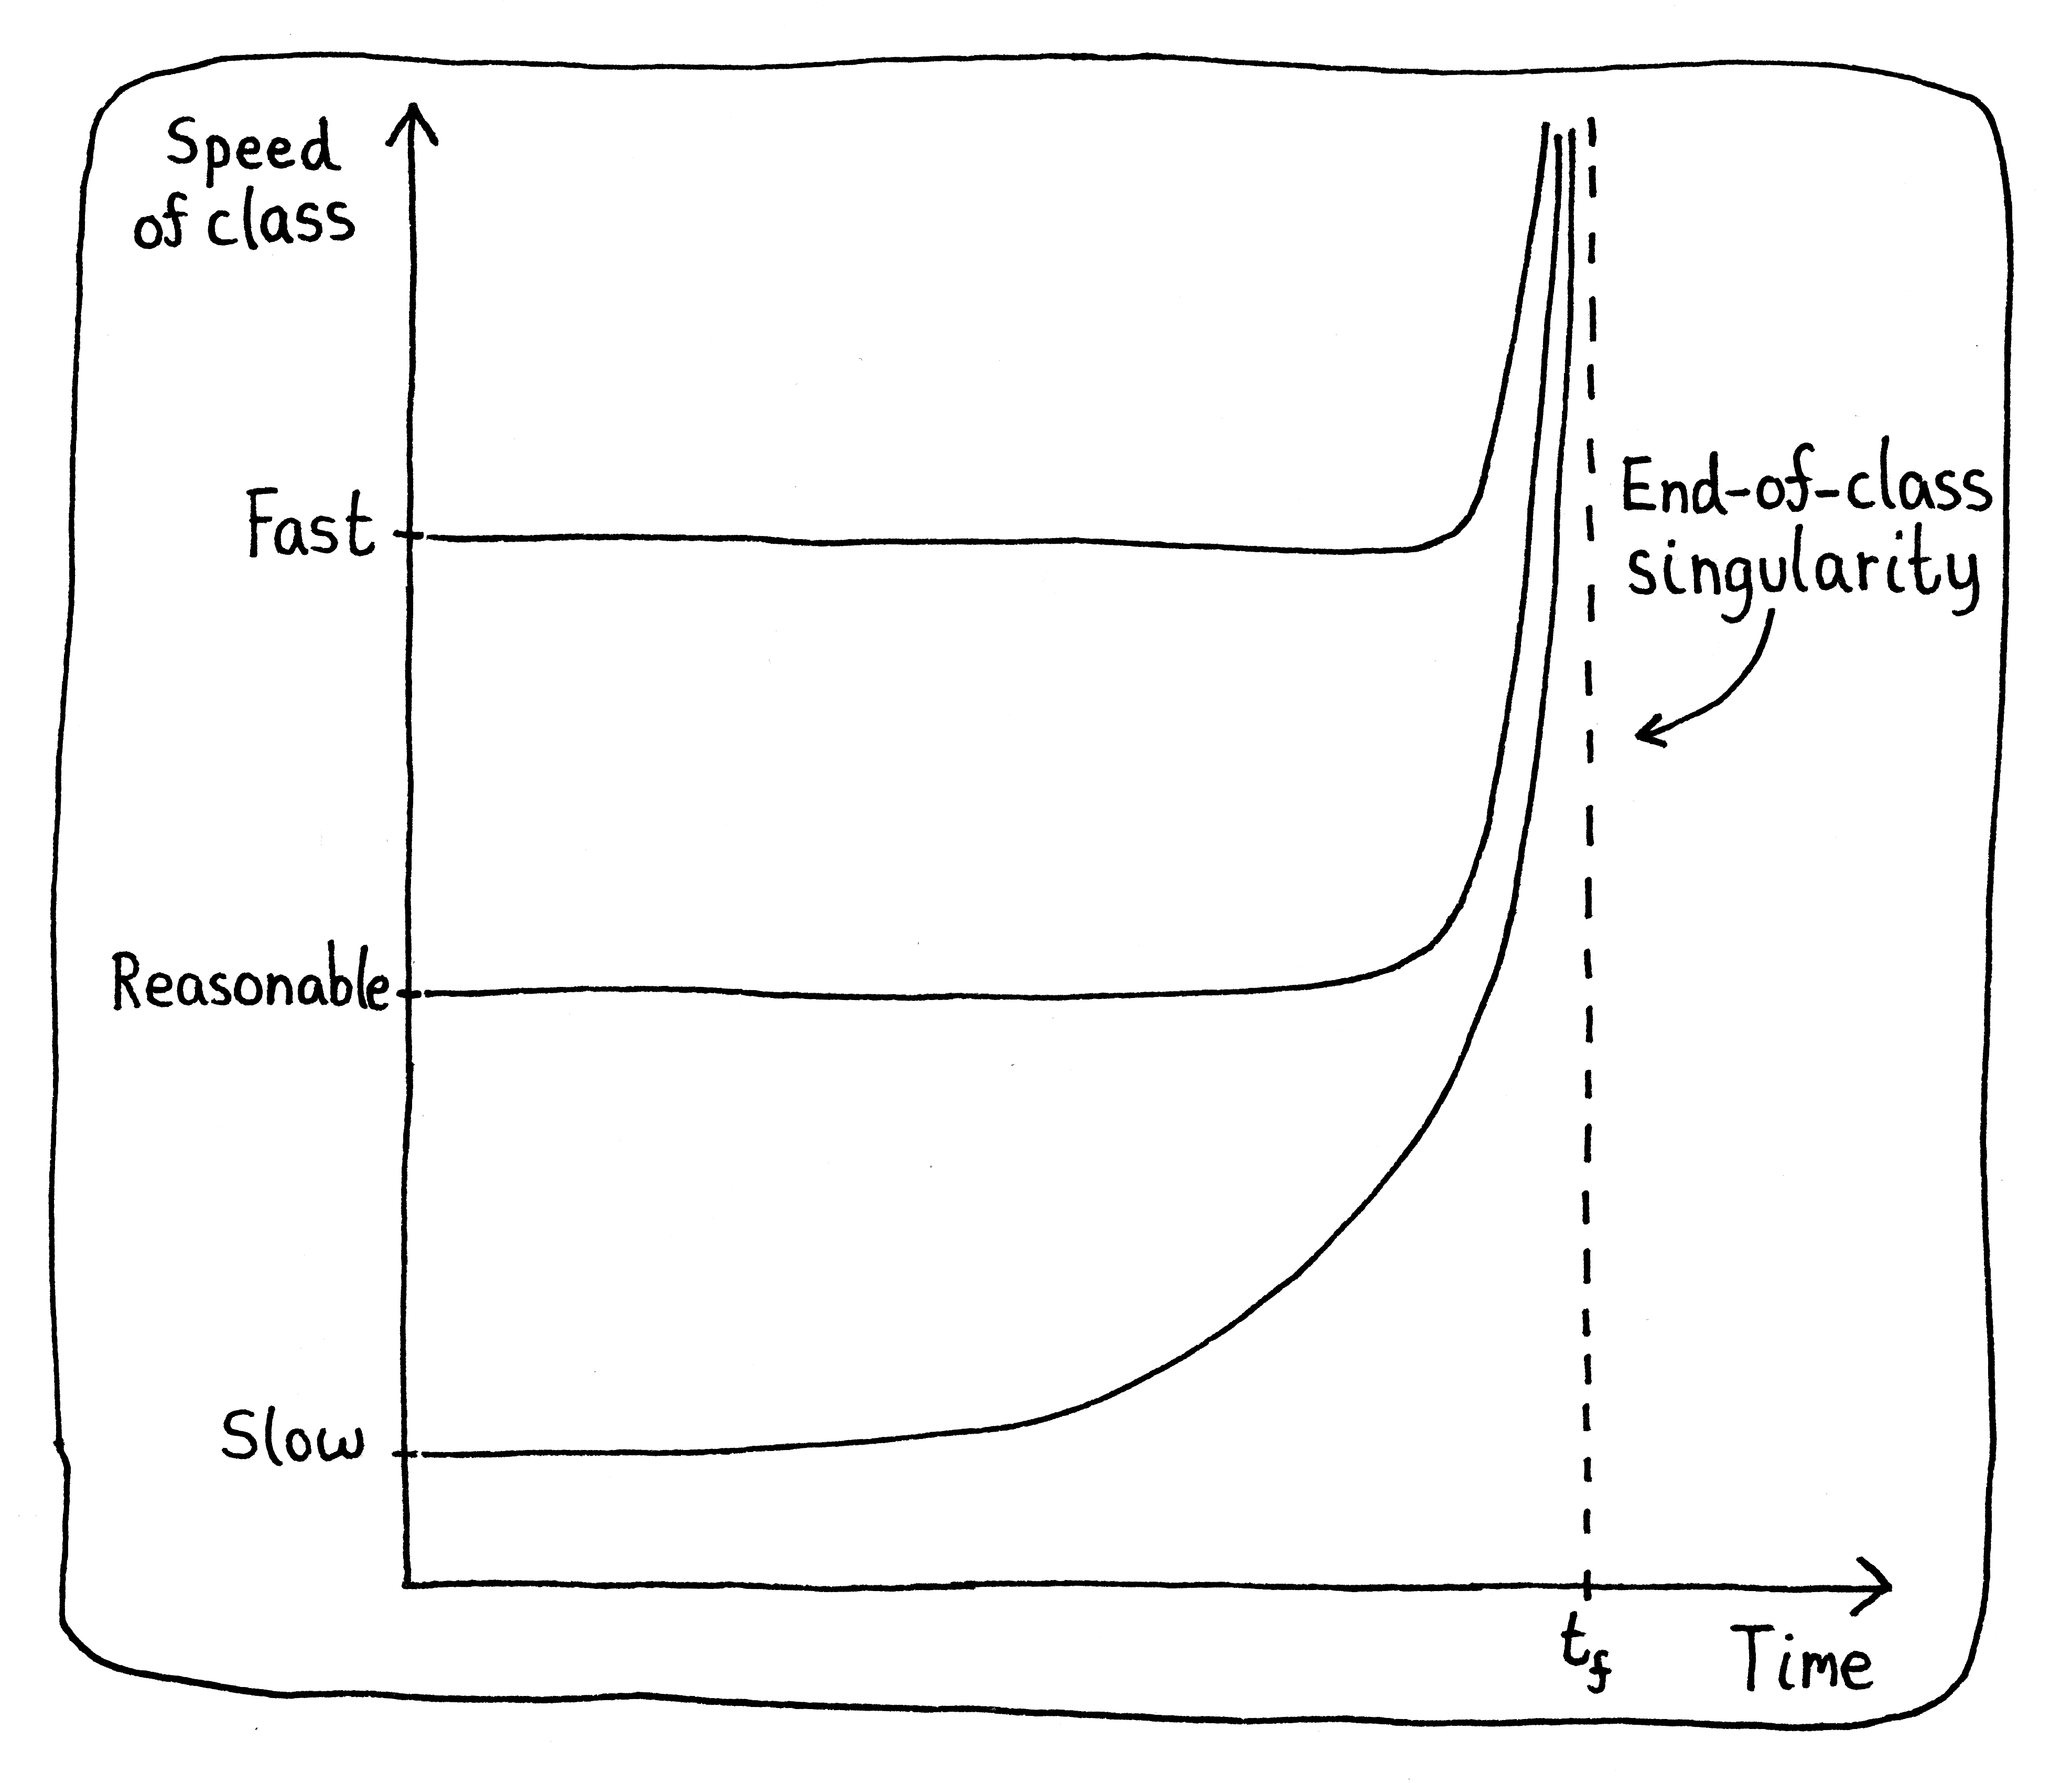 A graph showing that no matter how fast a teacher goes in class, there's always room for them to speed up.